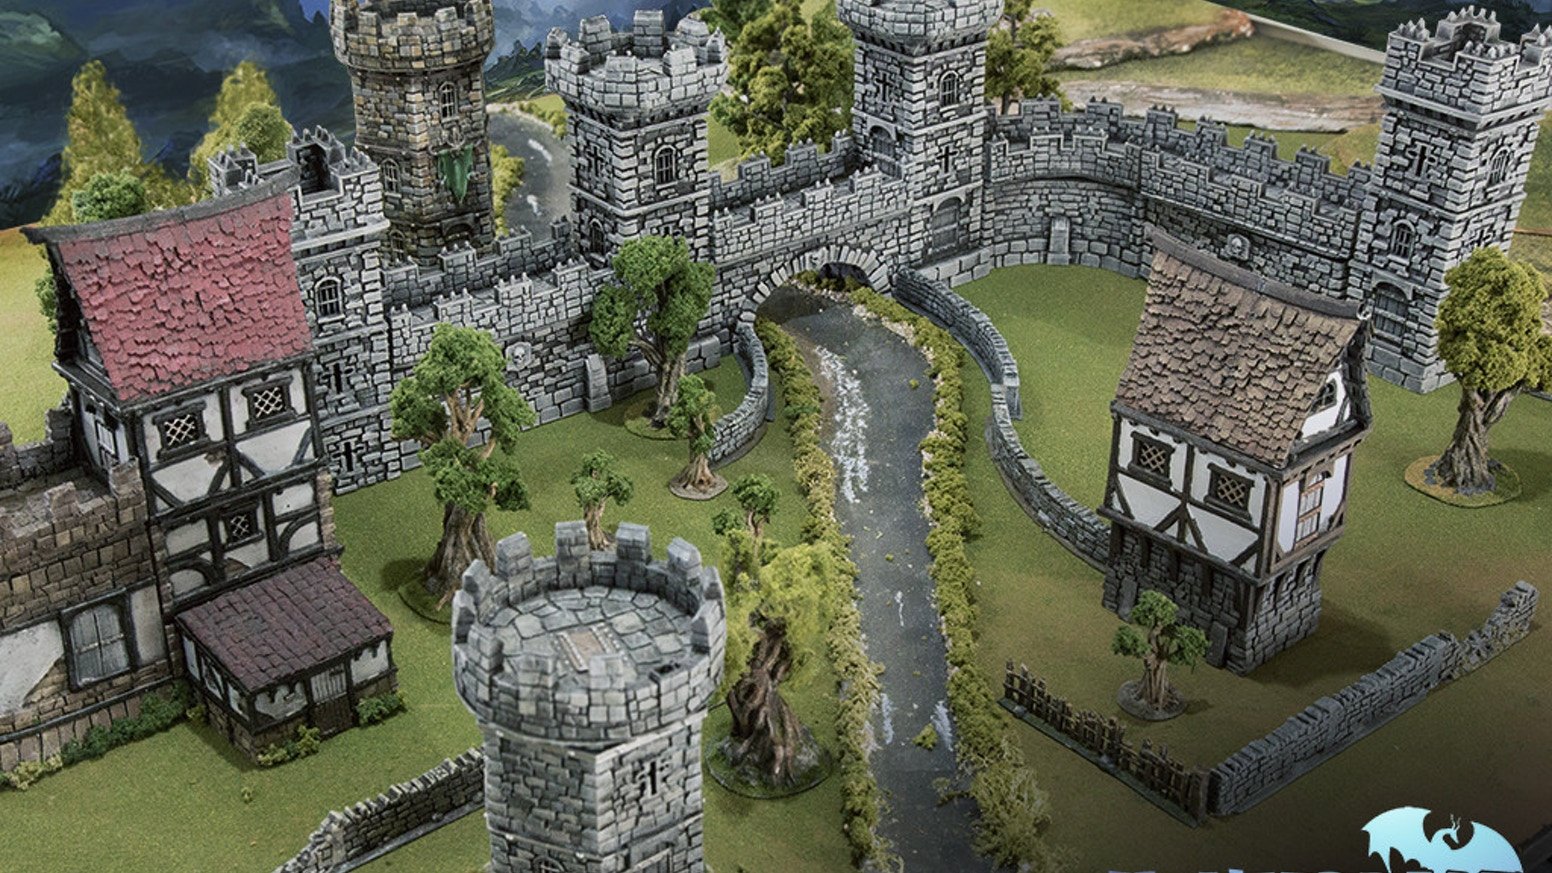 Winterdale is a beautifully designed medieval fantasy citadel collection for 28mm gaming. Winterdale is modular and can be customized